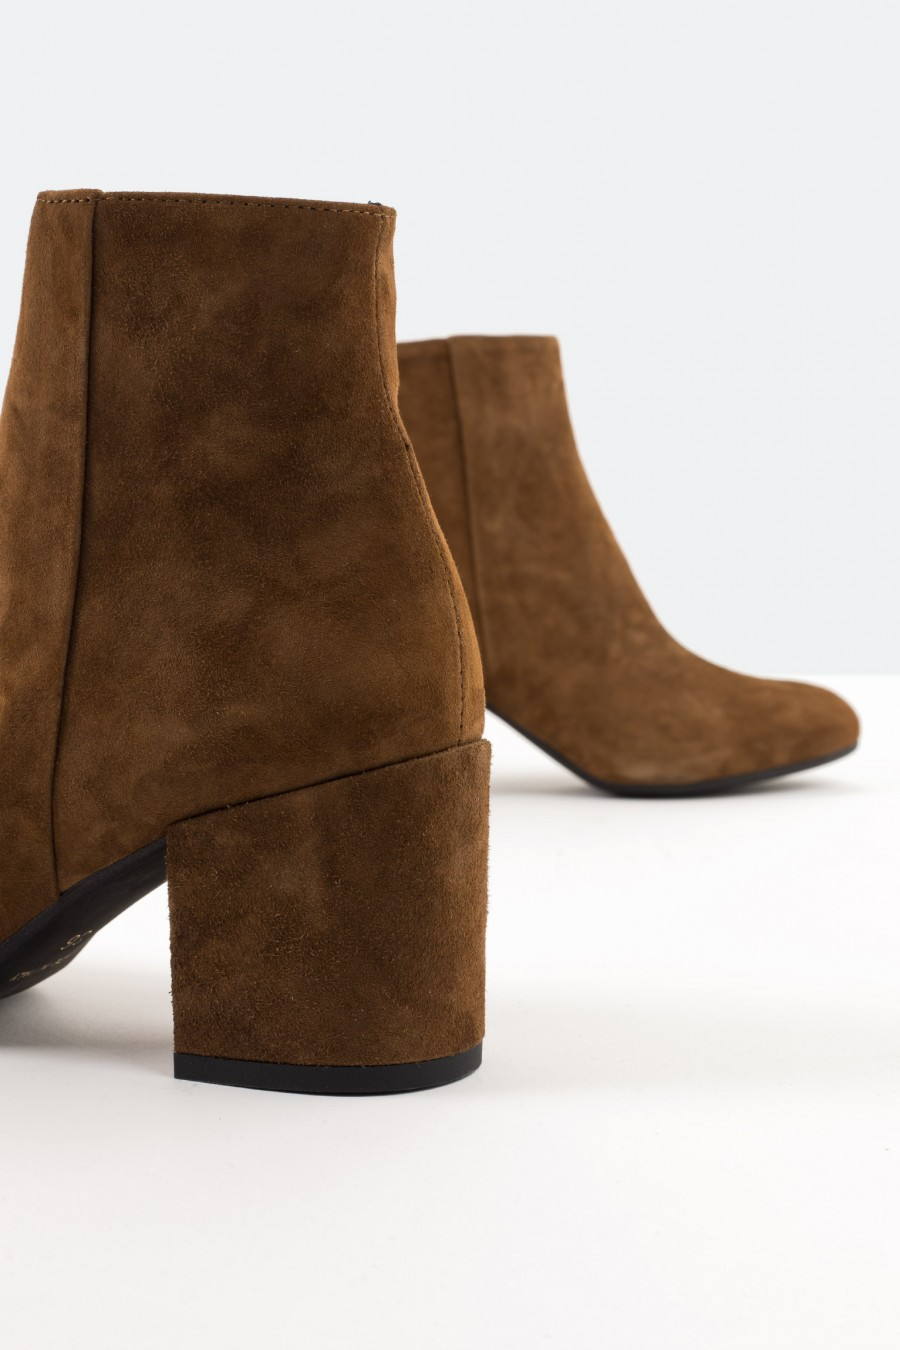 Low heeled brown ankle boots